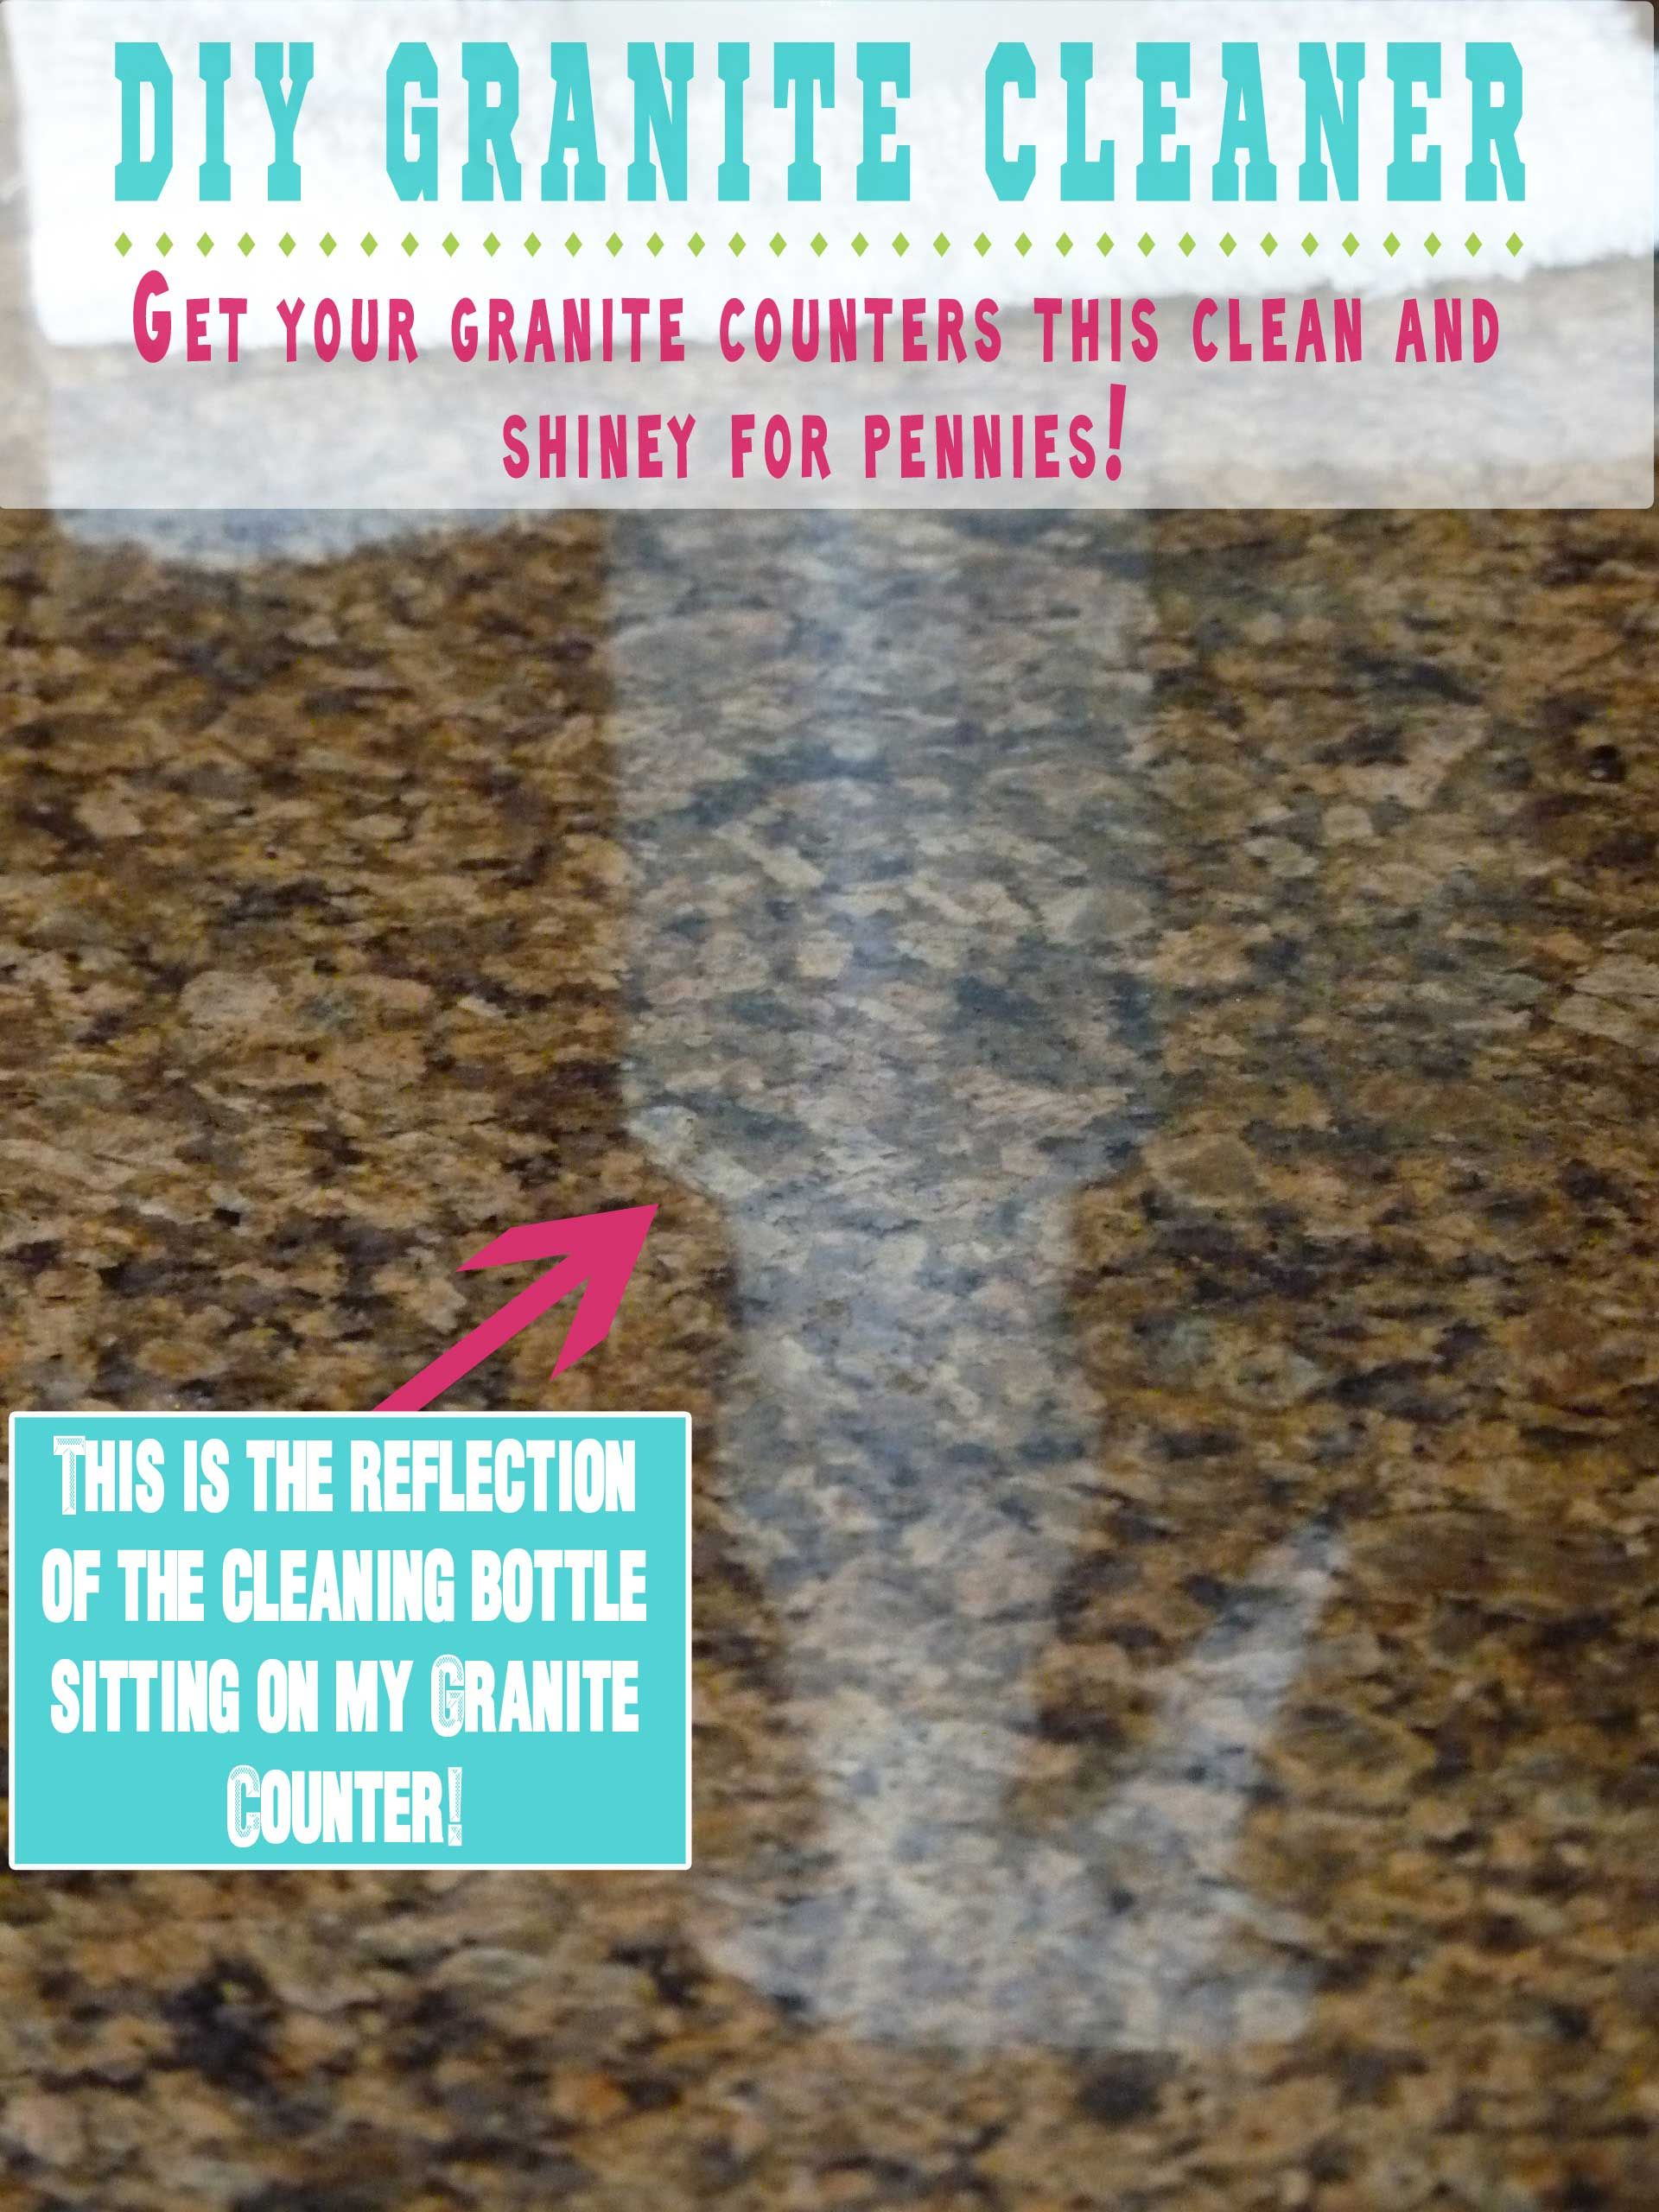 DIY Granite Cleaner: 1/4 C Rubbing Alcohol, 3 Drops Dishwashing Liquid, 2  Cups Water, 5 6 Drops Essential Oils. Place Them In A Cleaning Bottle, ...